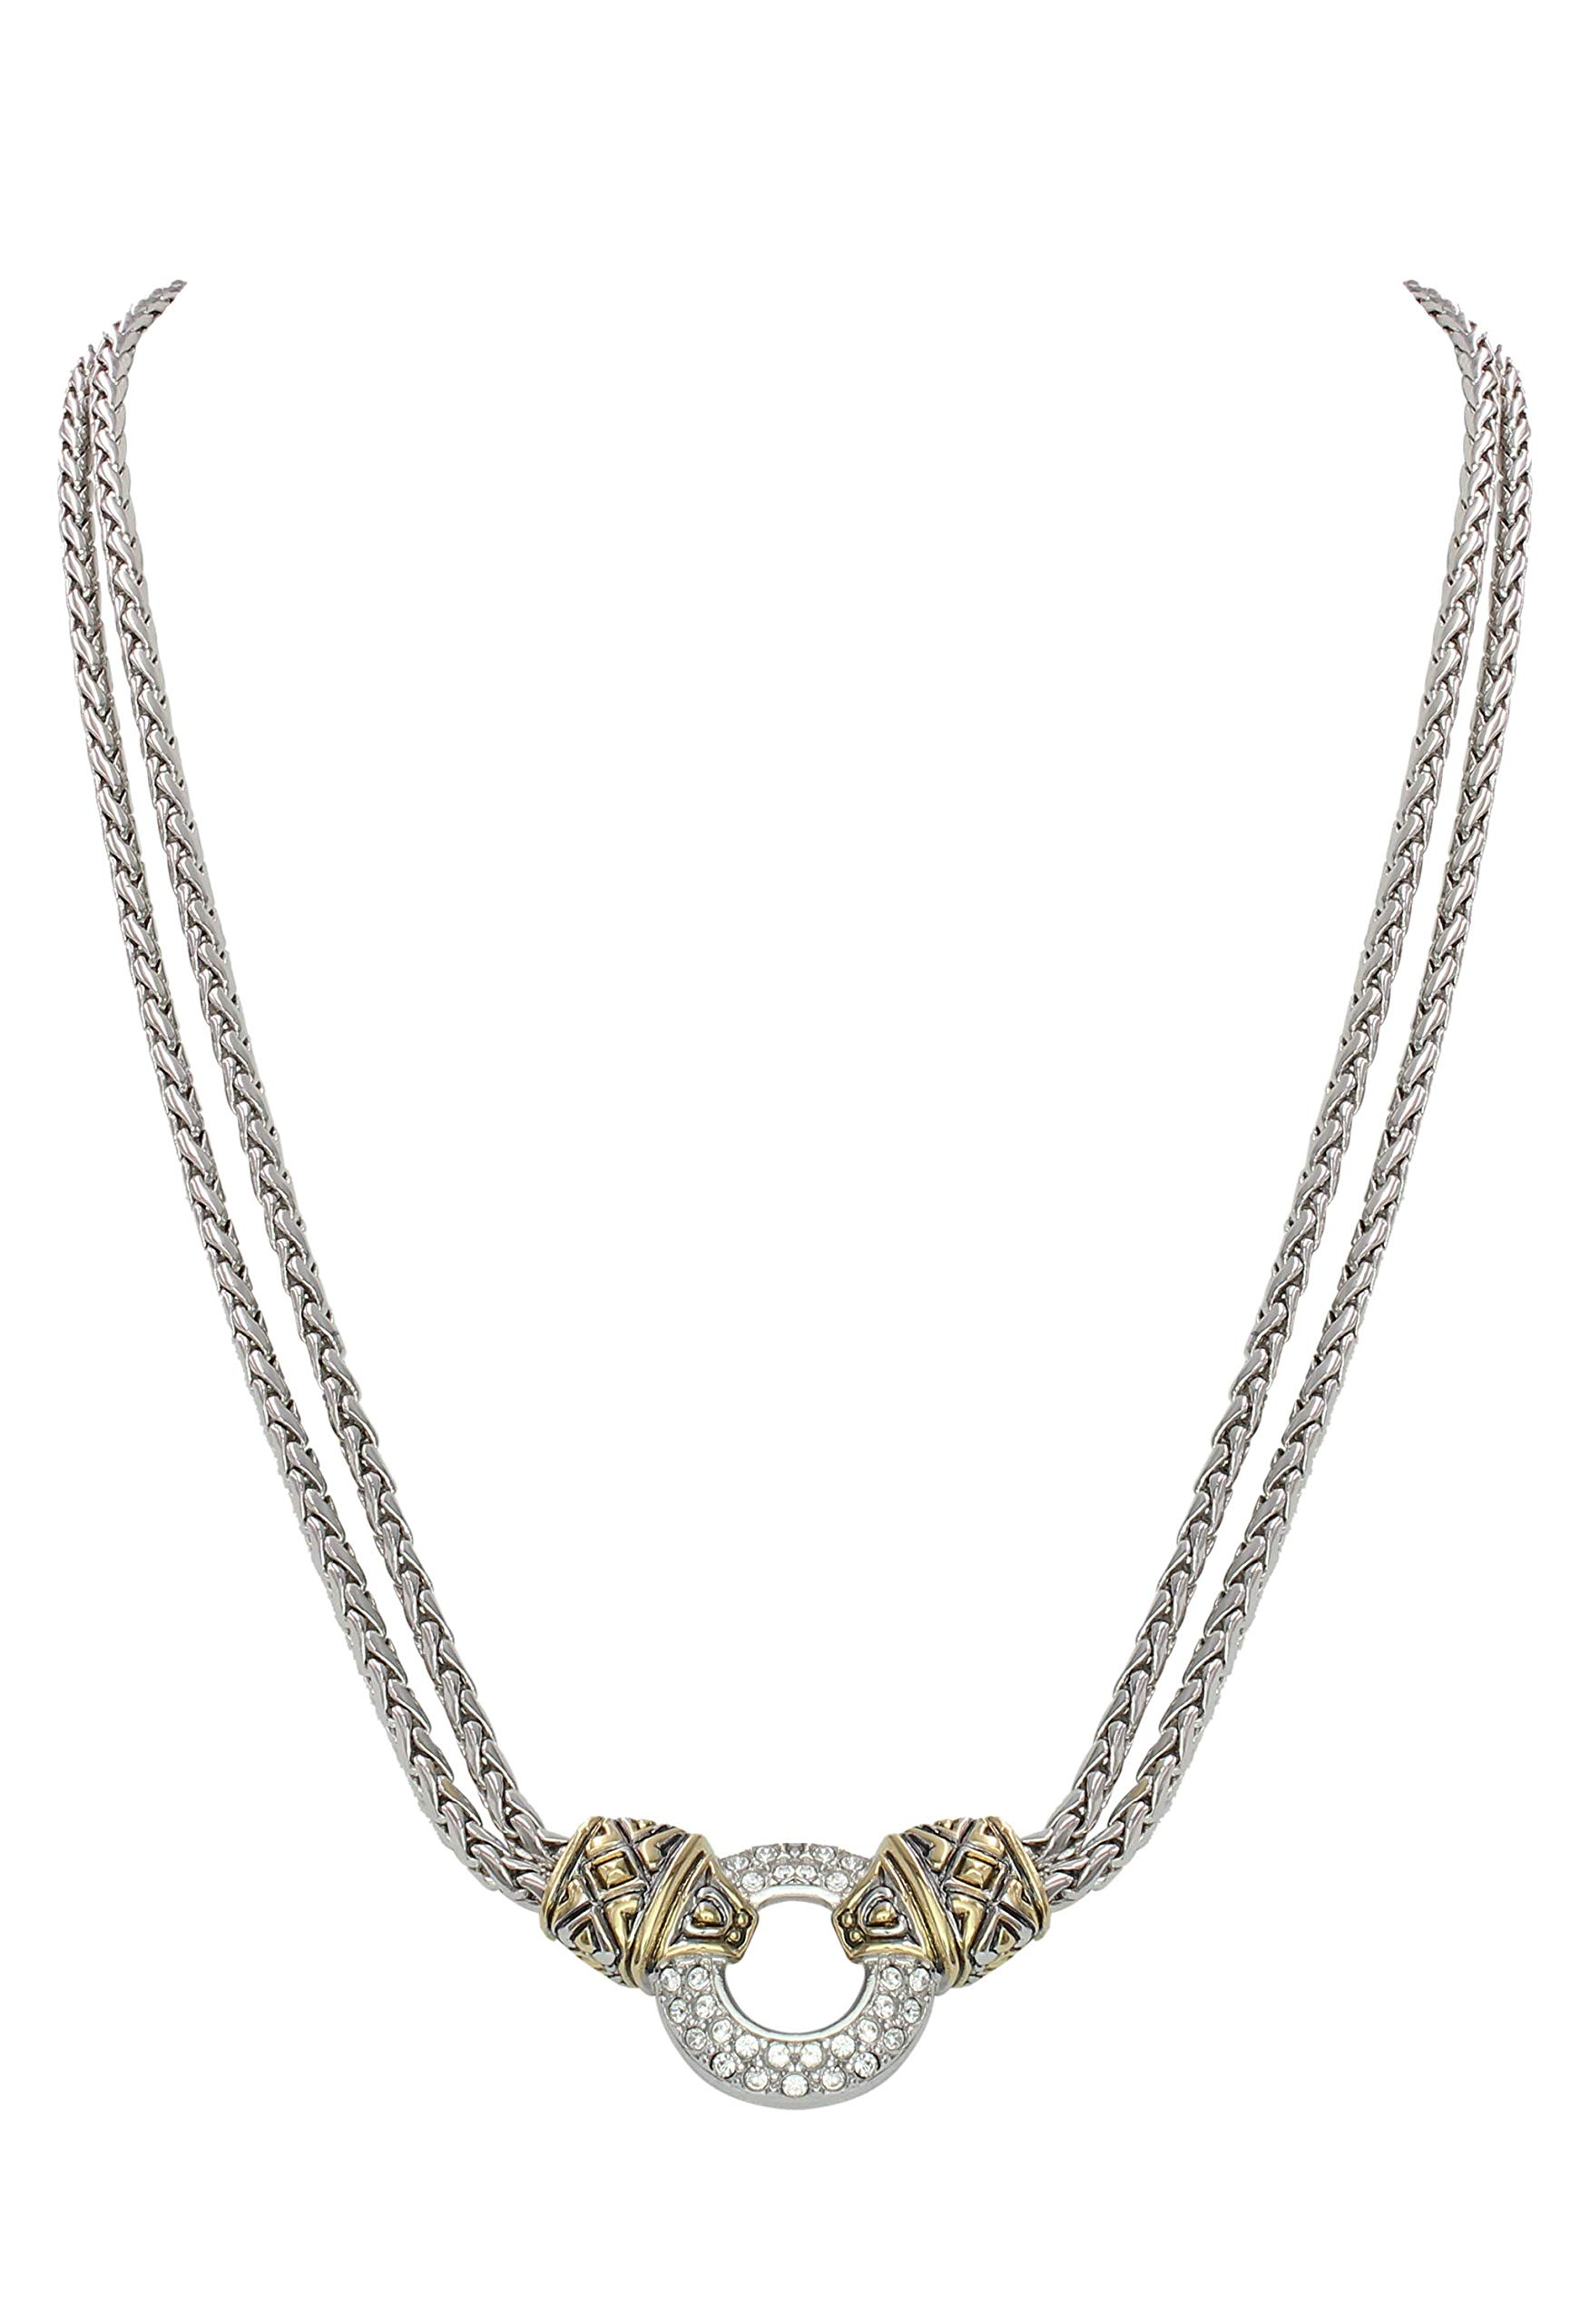 """John Medeiros Pavè Setting Cubic-Zirconia Circle Double Strand Gold and Silver Tone Necklace 16"""" Inner Diameter Made in The USA"""